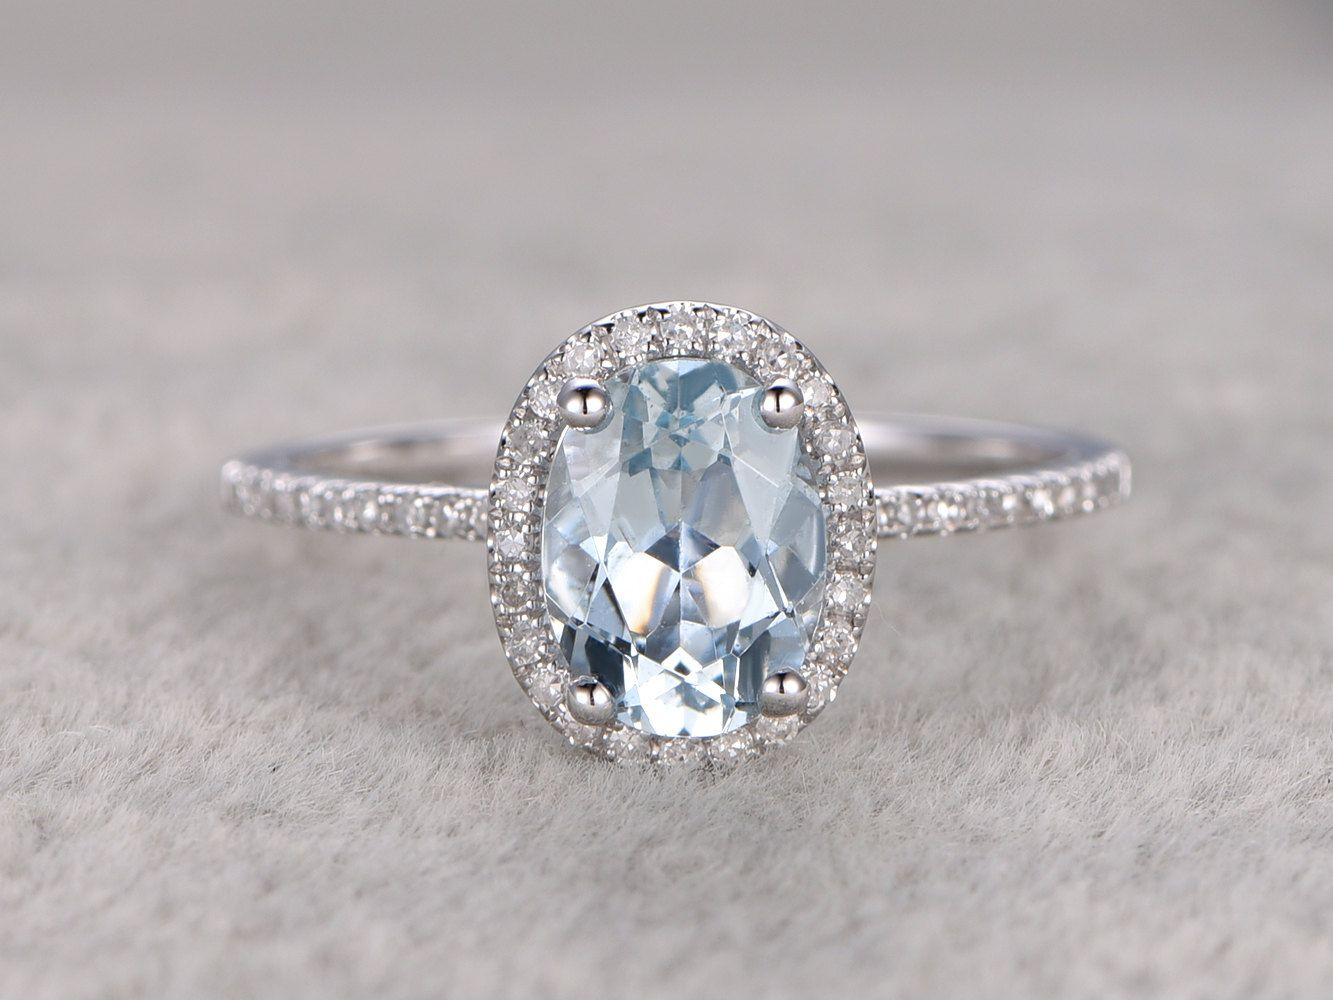 Engagement & Wedding Solid 14k Yellow Gold Genuine Natural Sparkly Aquamarine Engagement Diamond Ring